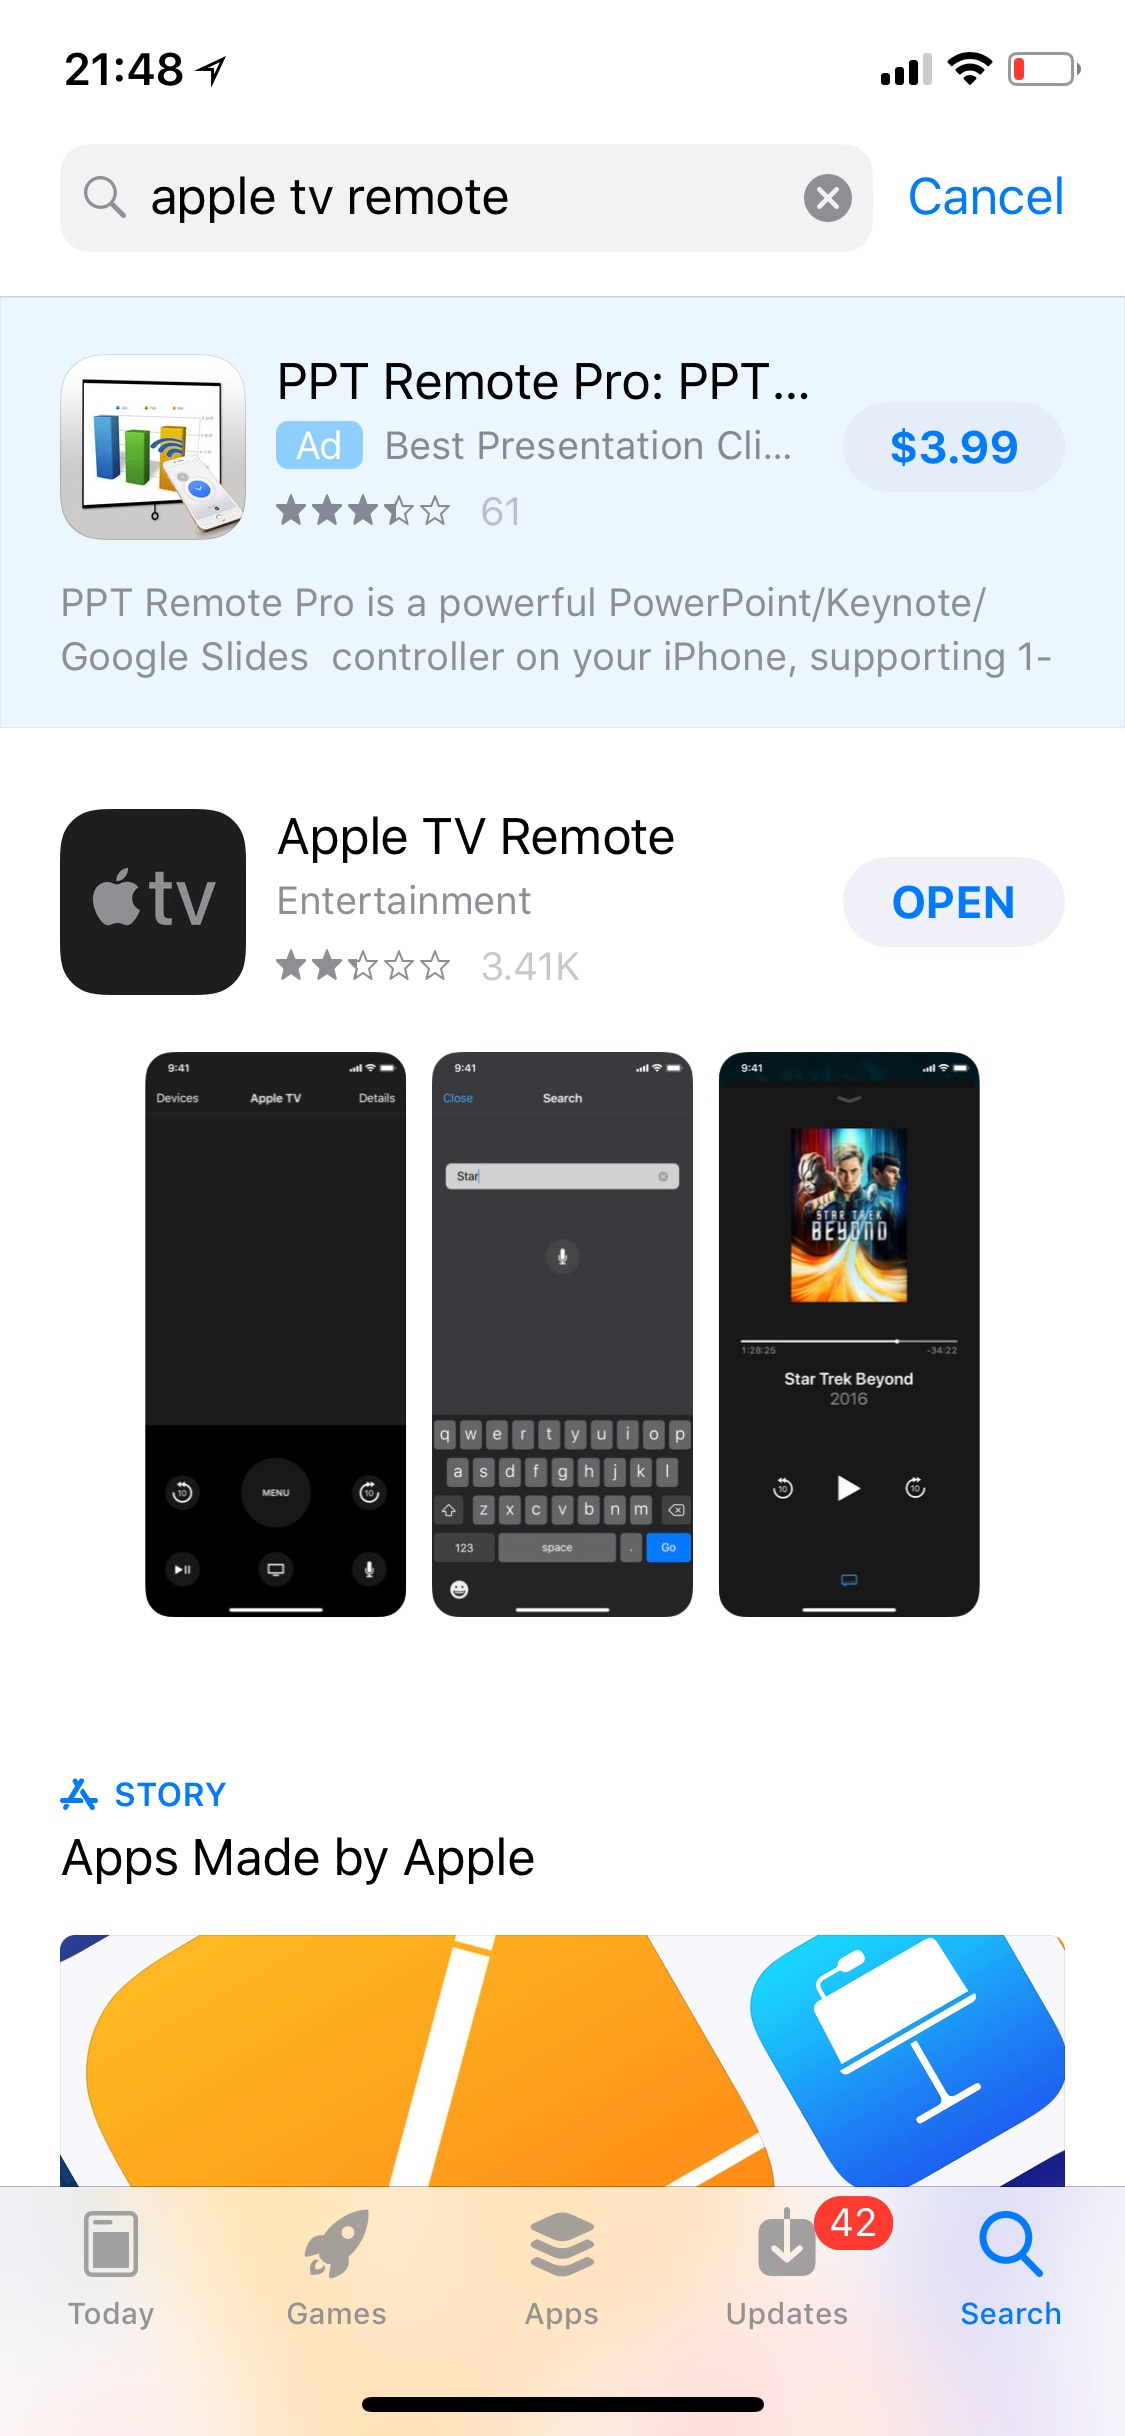 How to Install and Setup Apple TV Remote App - macReports